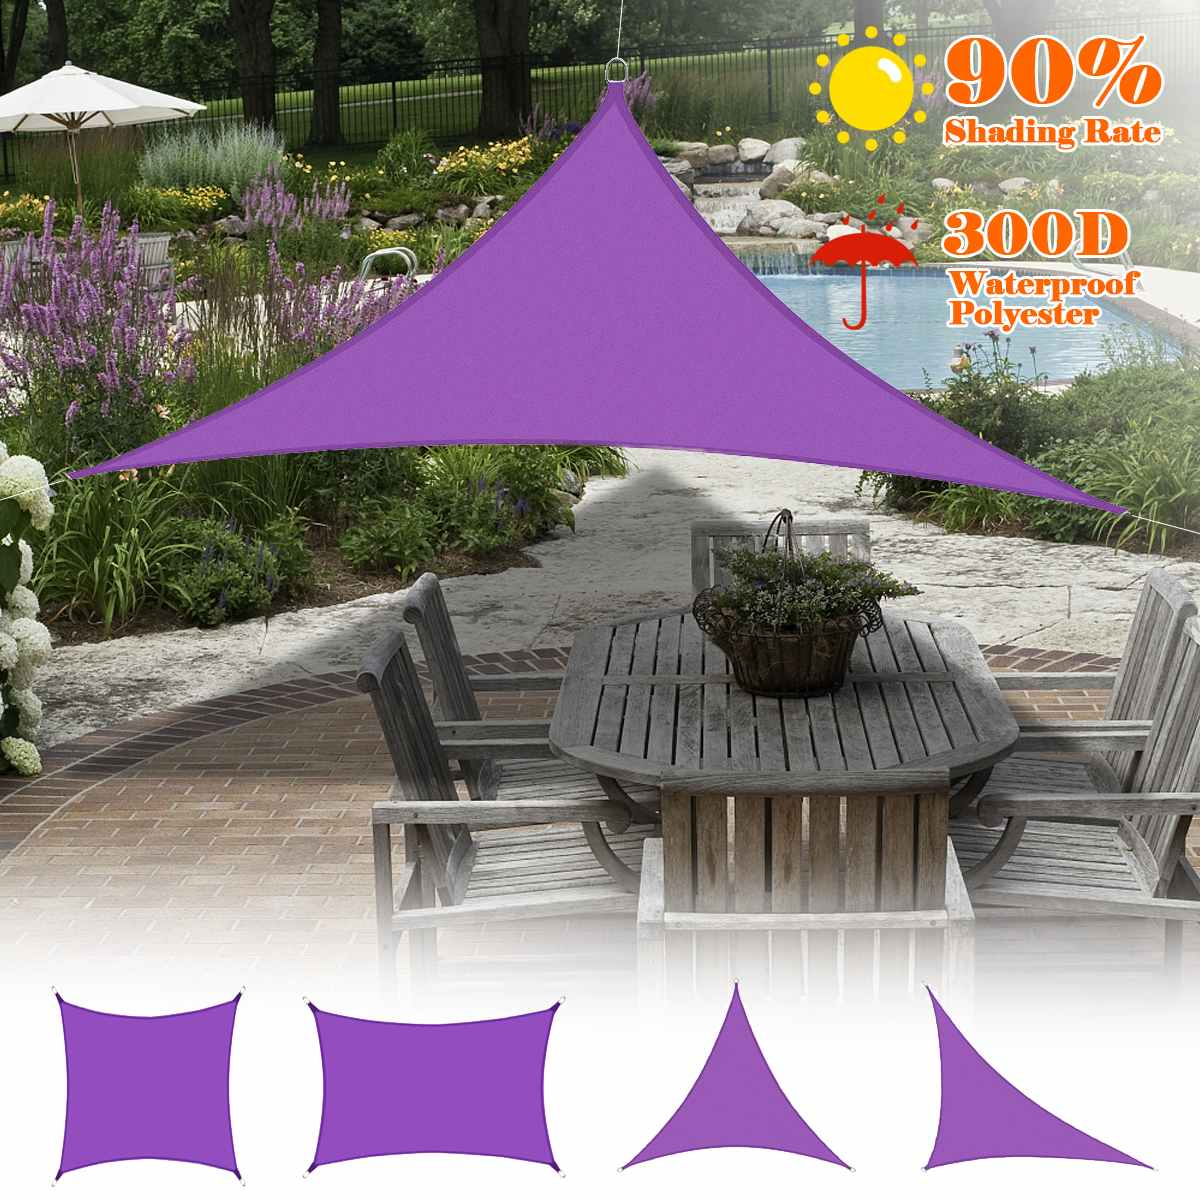 all size purple 300d sun shade sail home outdoor garden waterproof canopy patio plant cover uv block awning decoration sunshade